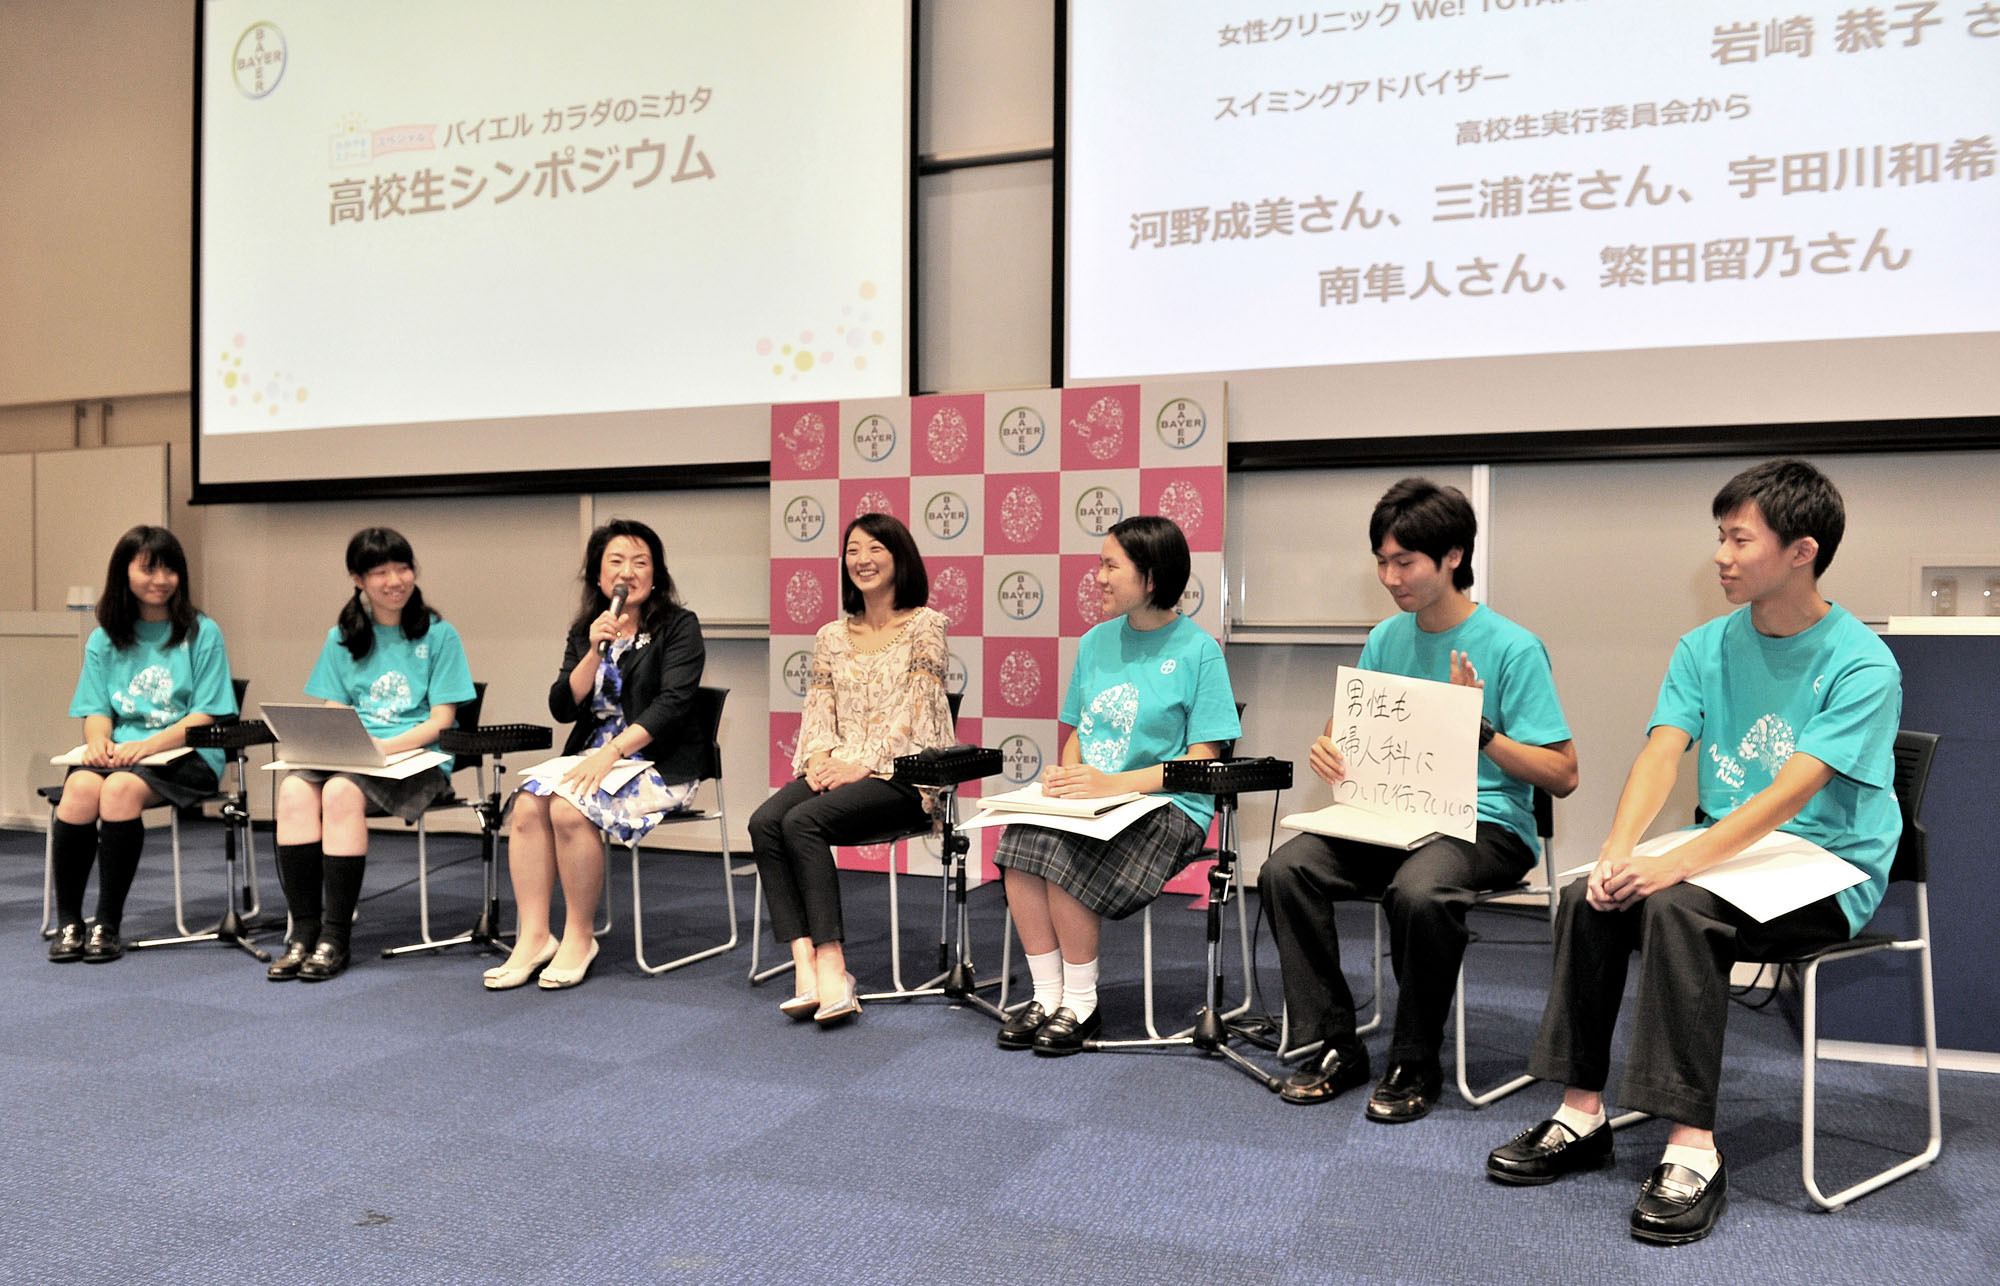 "Obstetrician Kyoko Tanebe (third from left), flanked by Barcelona Olympic gold medal swimmer Kyoko Iwasaki (center) and five members of a high school executive committee representing about 50 high schools, speaks at a Bayer Yakuhin, Ltd. symposium, ""Karada no Mikata"" (Healthy body), at Showa Women's University in Tokyo on August 24. The symposium ended with a declaration of ""Act Now! Learn, Change and Care for a Bright Future."" 